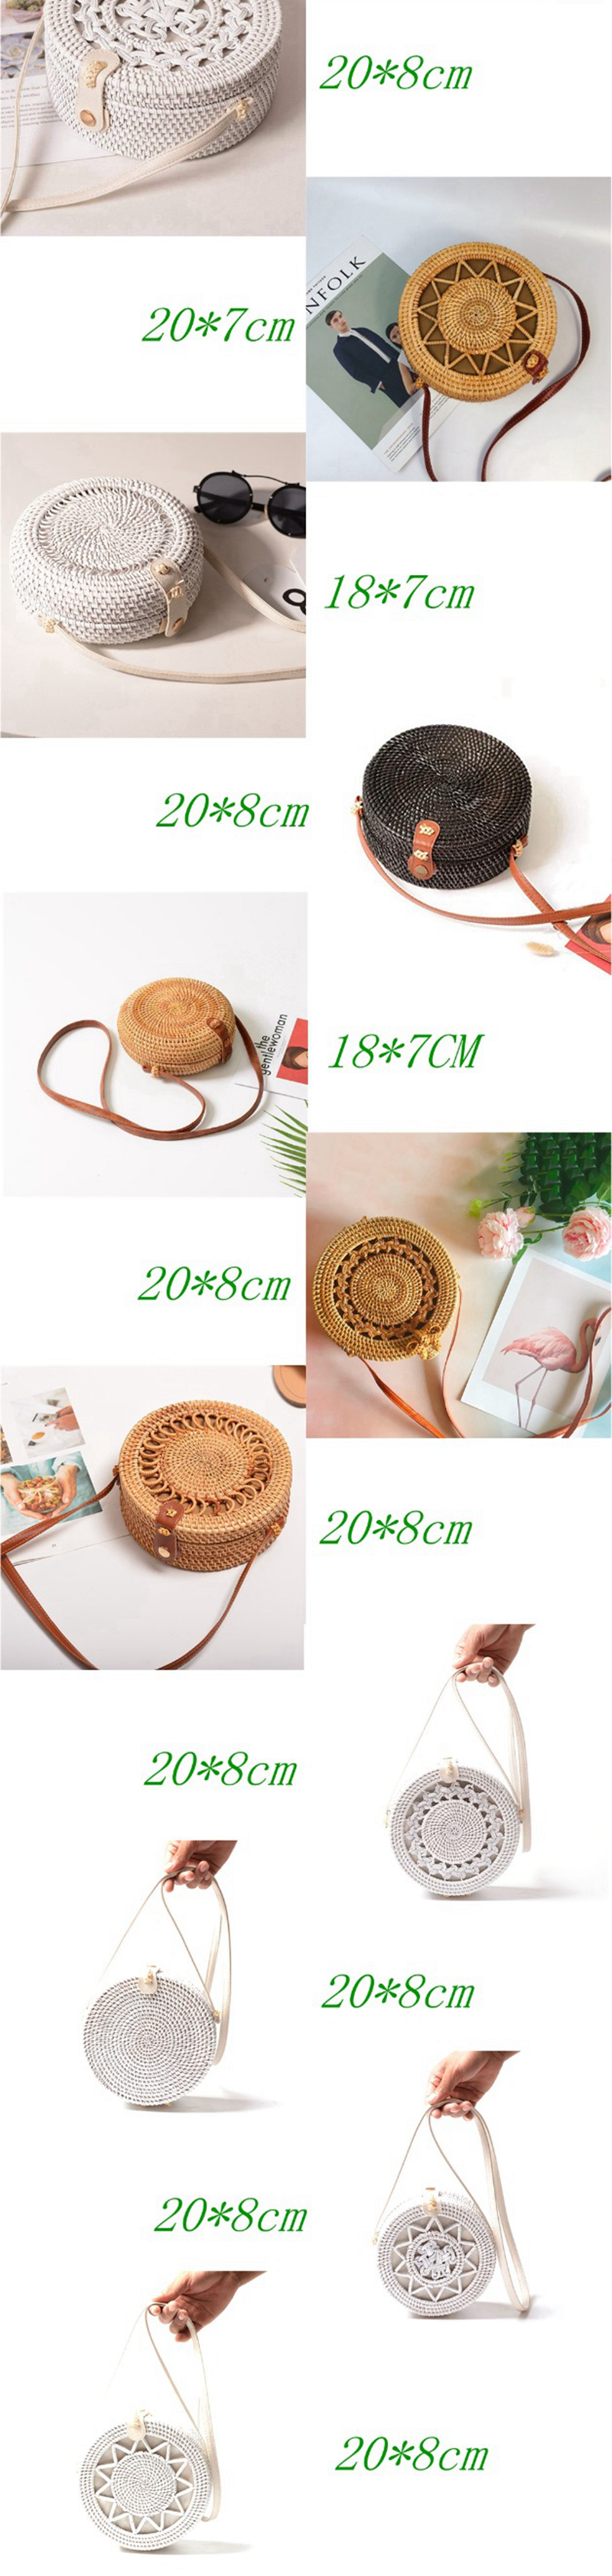 Bali Vintage Handmade Crossbody Leather Bag Round Beach Bag Girls Circle Rattan bag Small Bohemian Shoulder bag 10